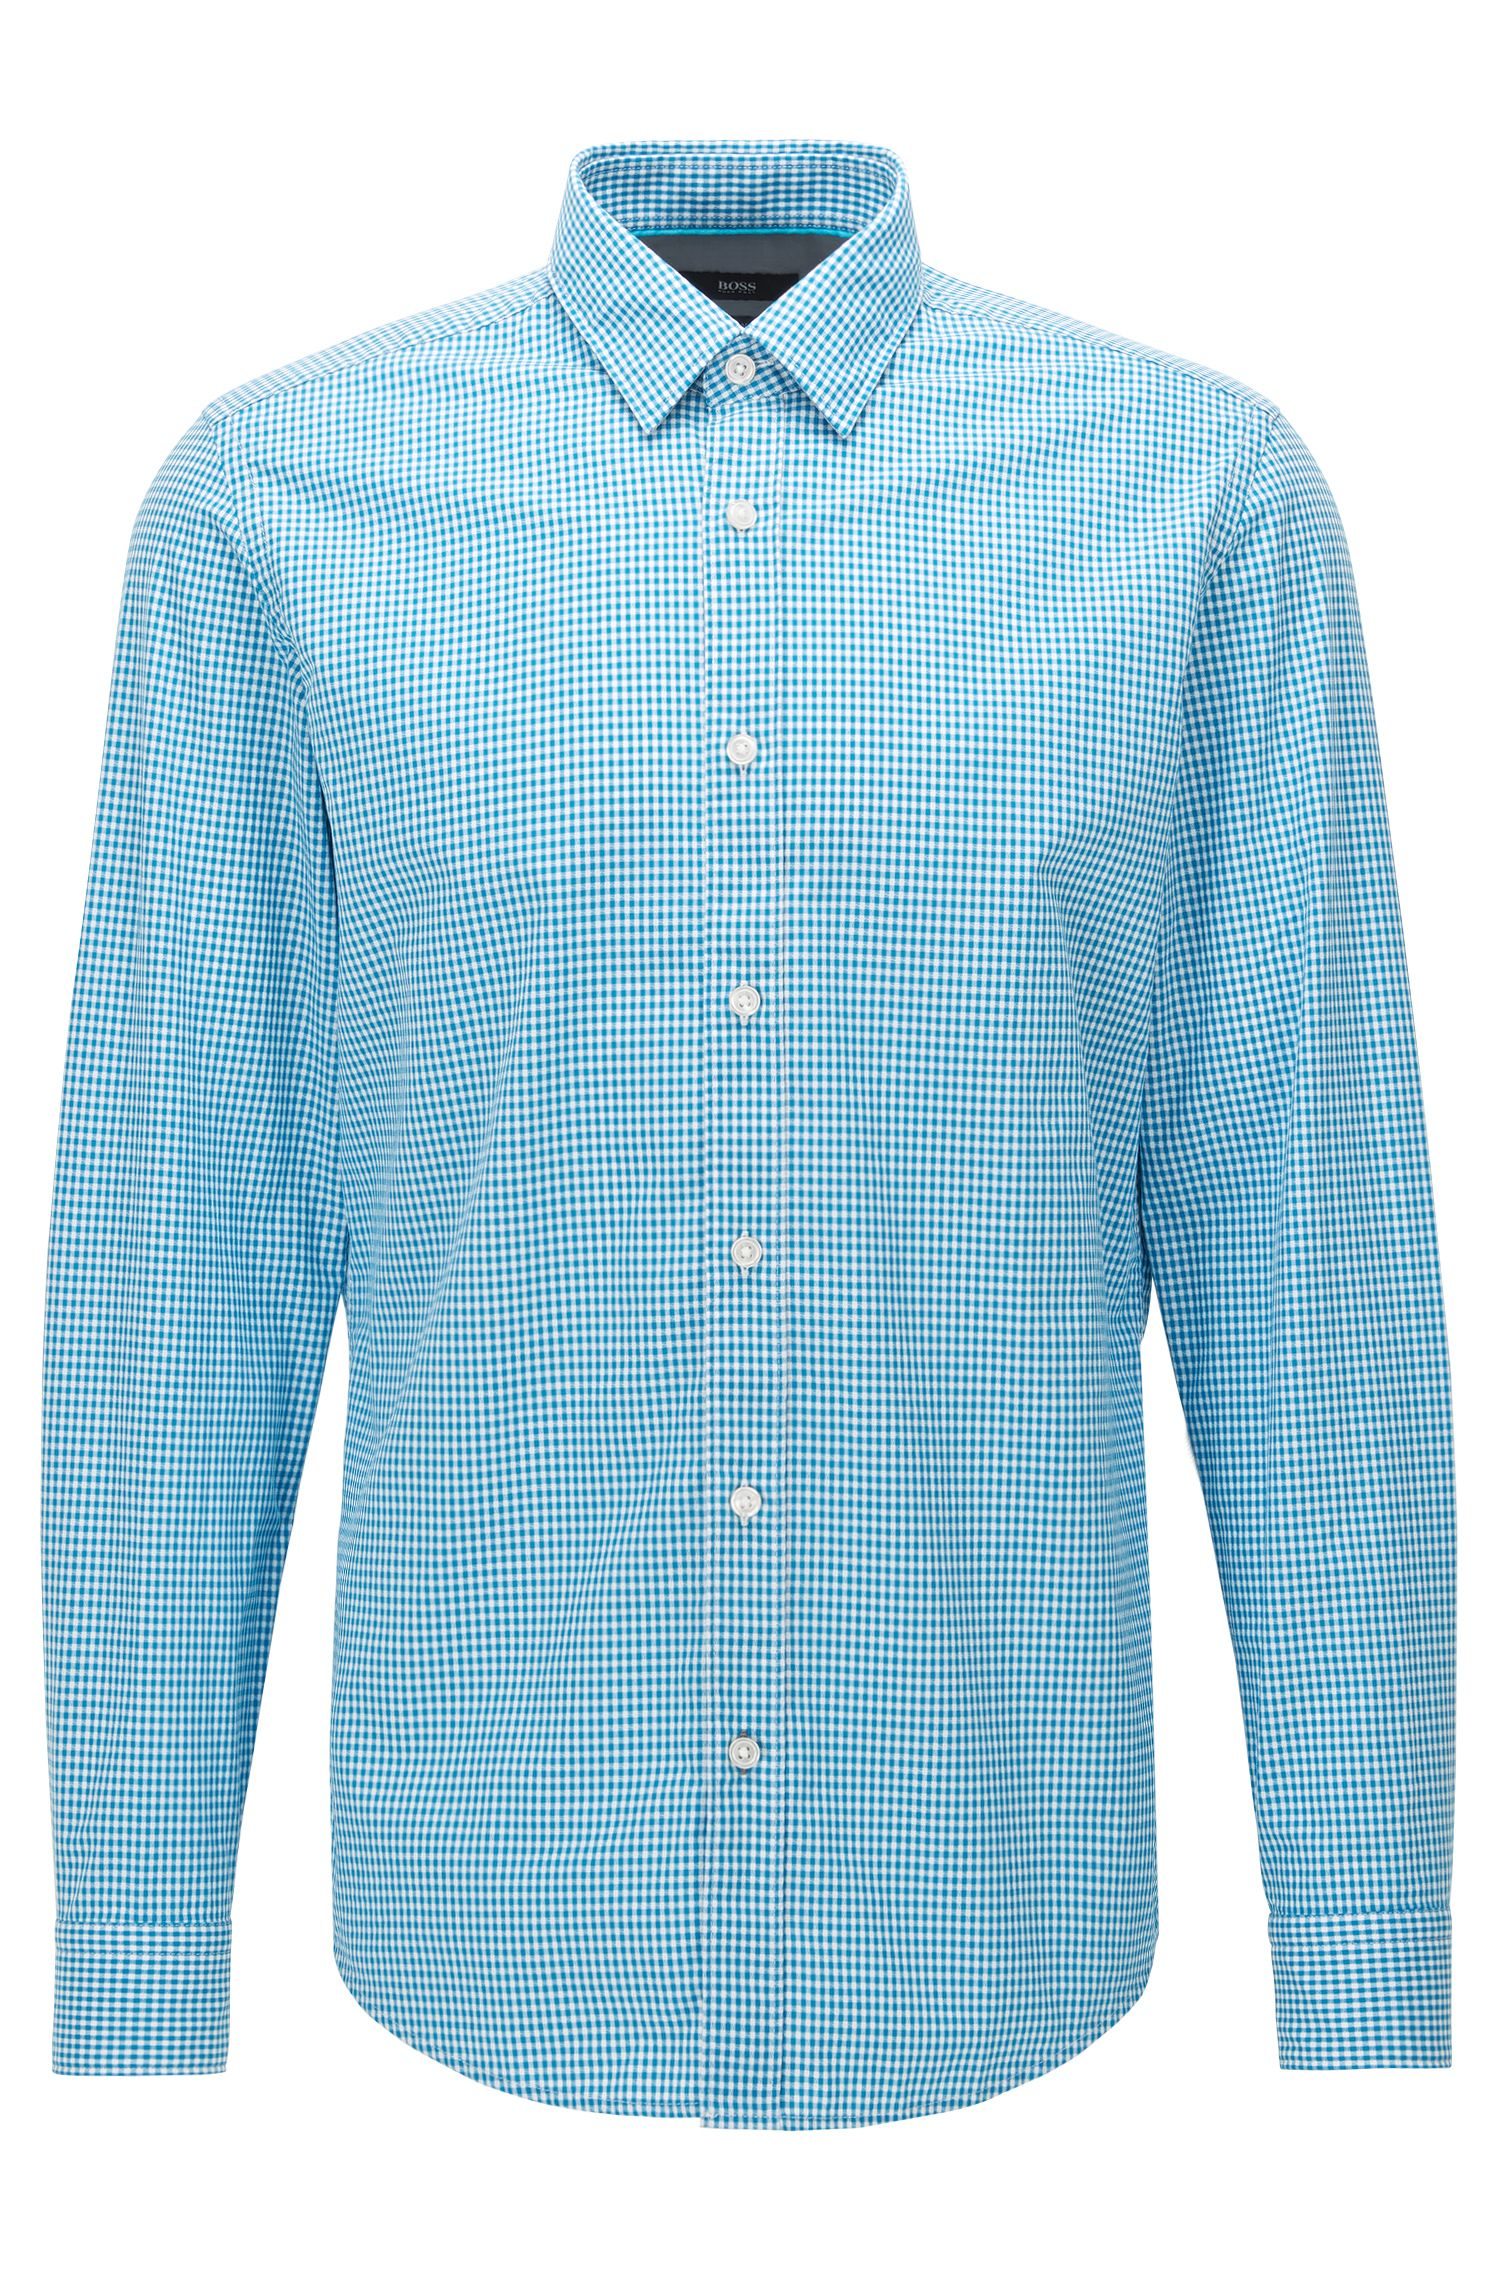 Regular-fit cotton shirt in a micro check